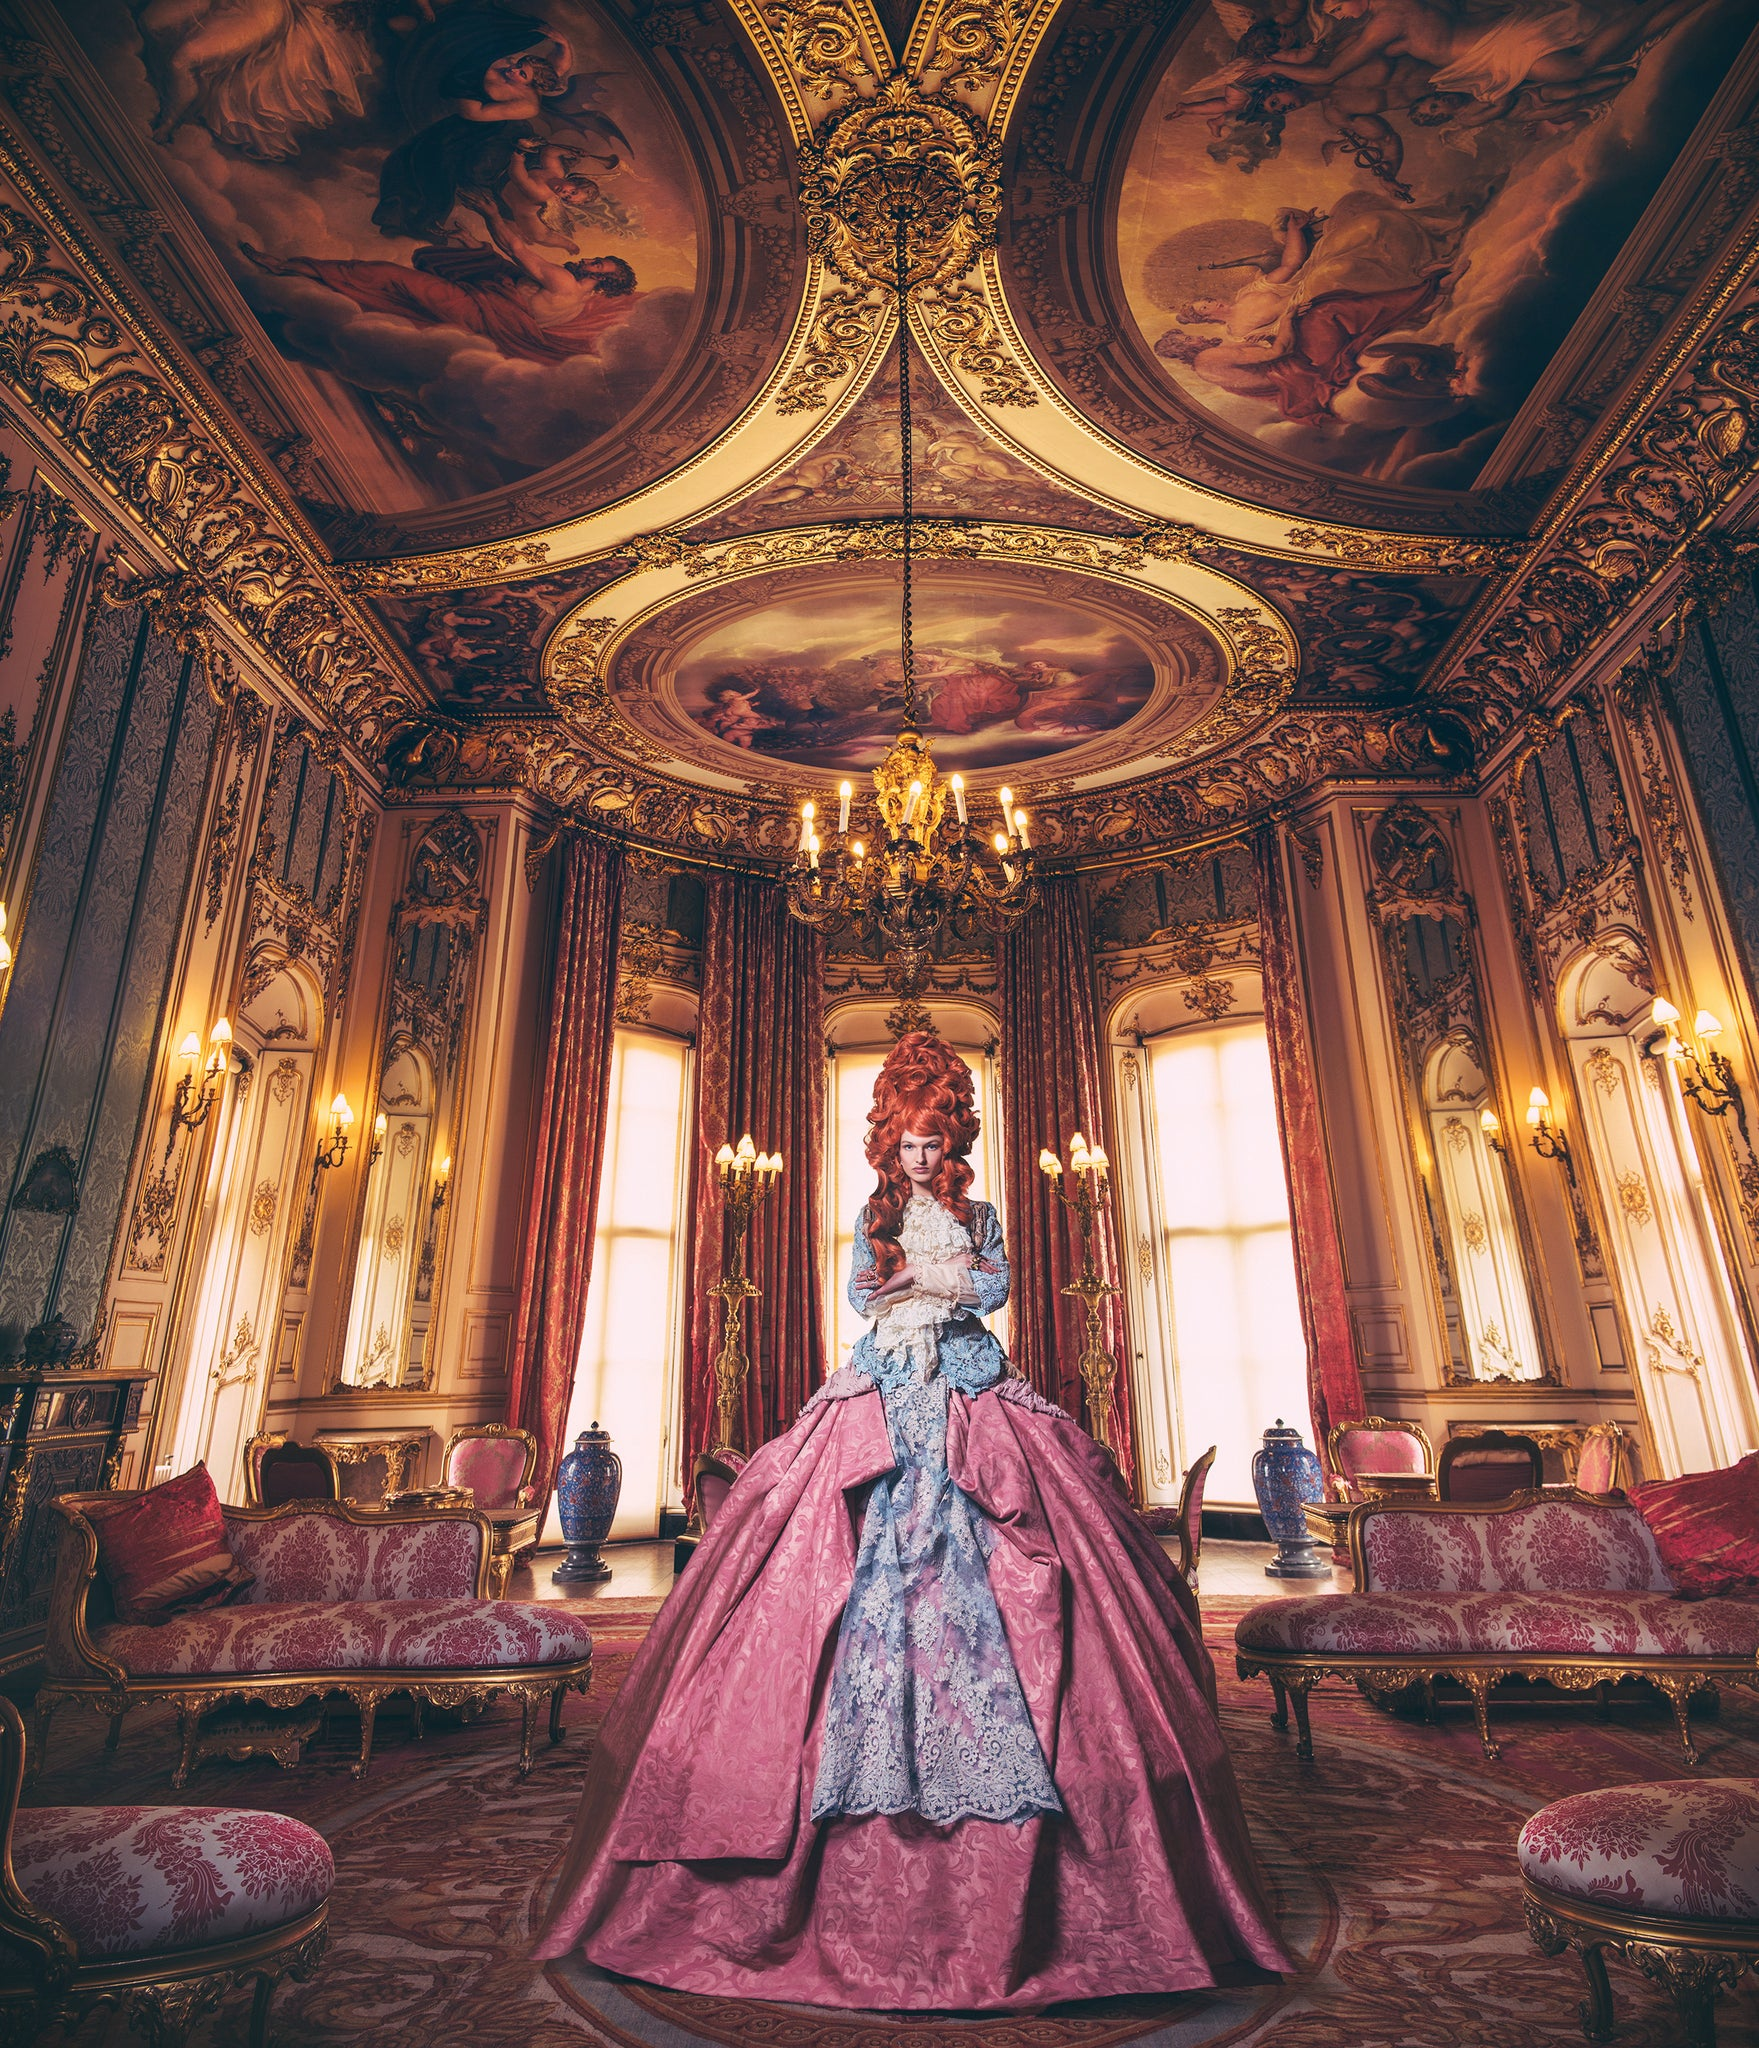 Miss Aniela – the governess